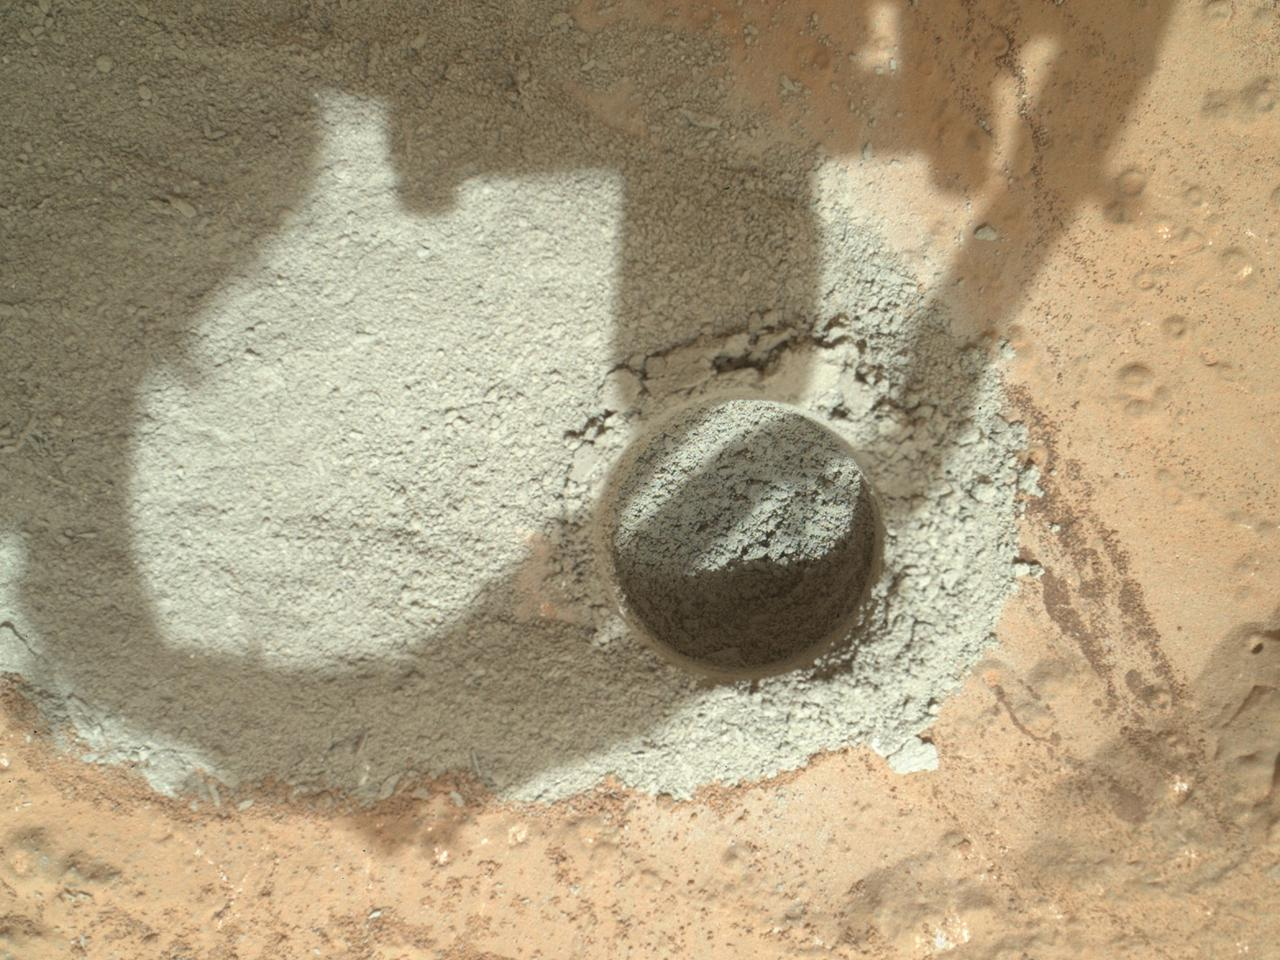 """Mini drill"" test by NASA's Mars rover Curiosity (Image: NASA/JPL-Caltech/MSSS)"